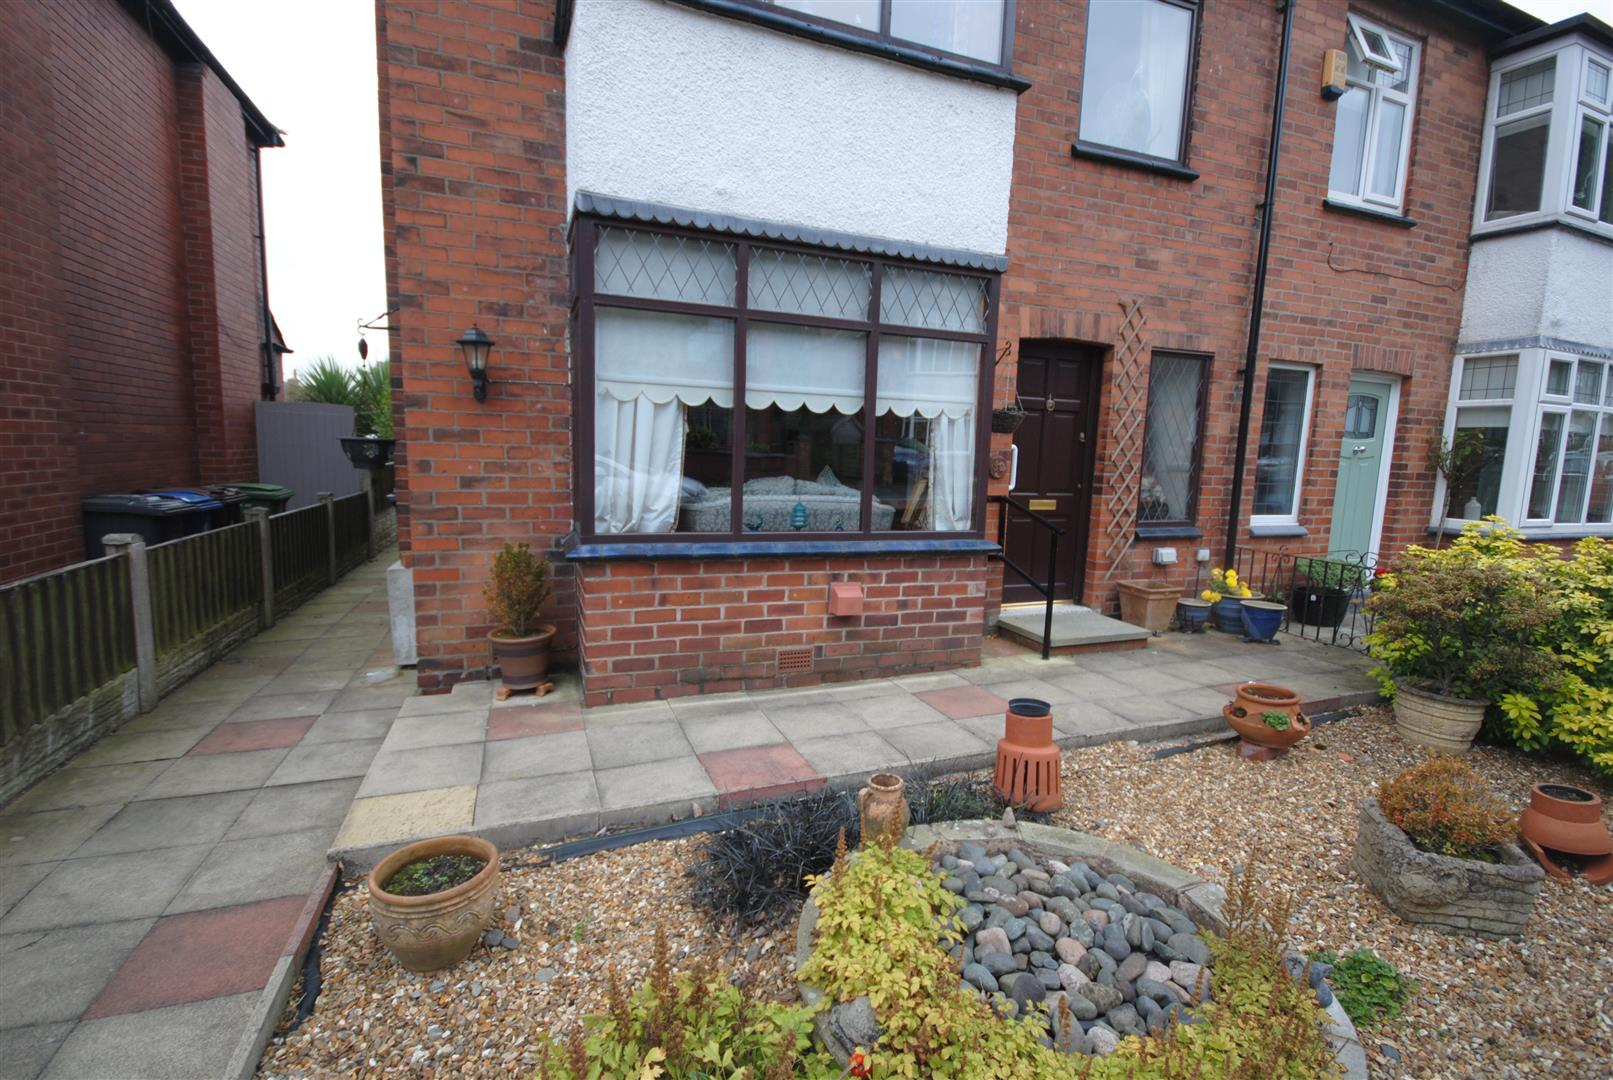 3 Bedrooms Semi Detached House for sale in Holme Avenue, Swinley, Wigan